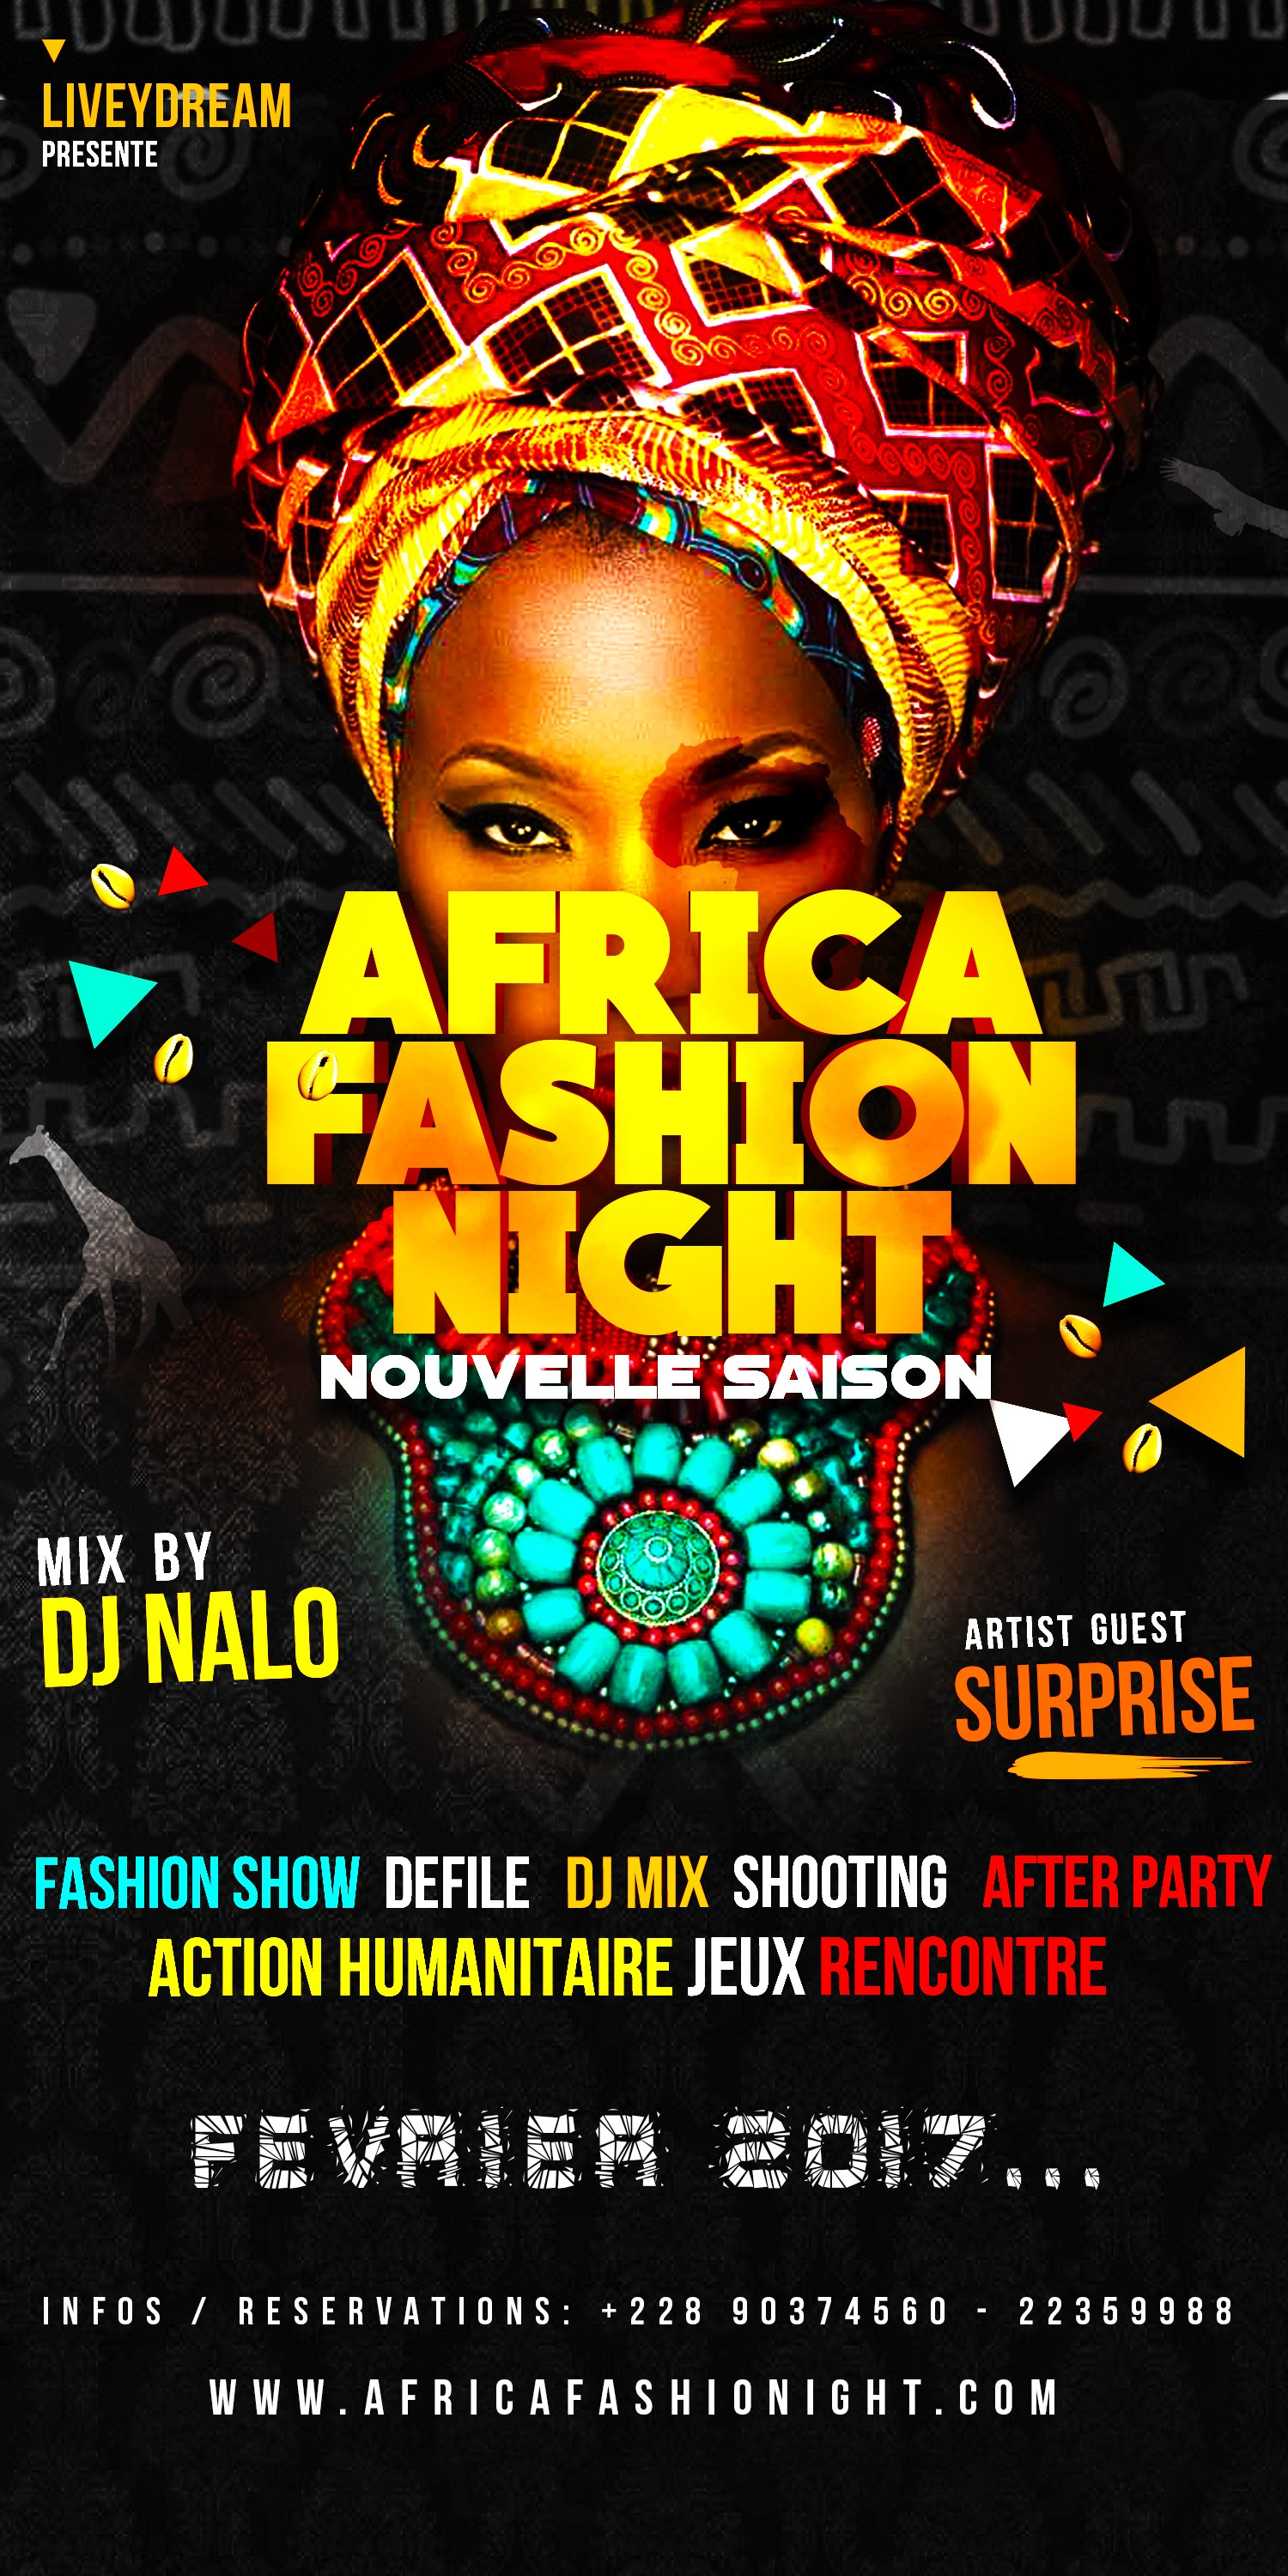 Africa Fashion Night